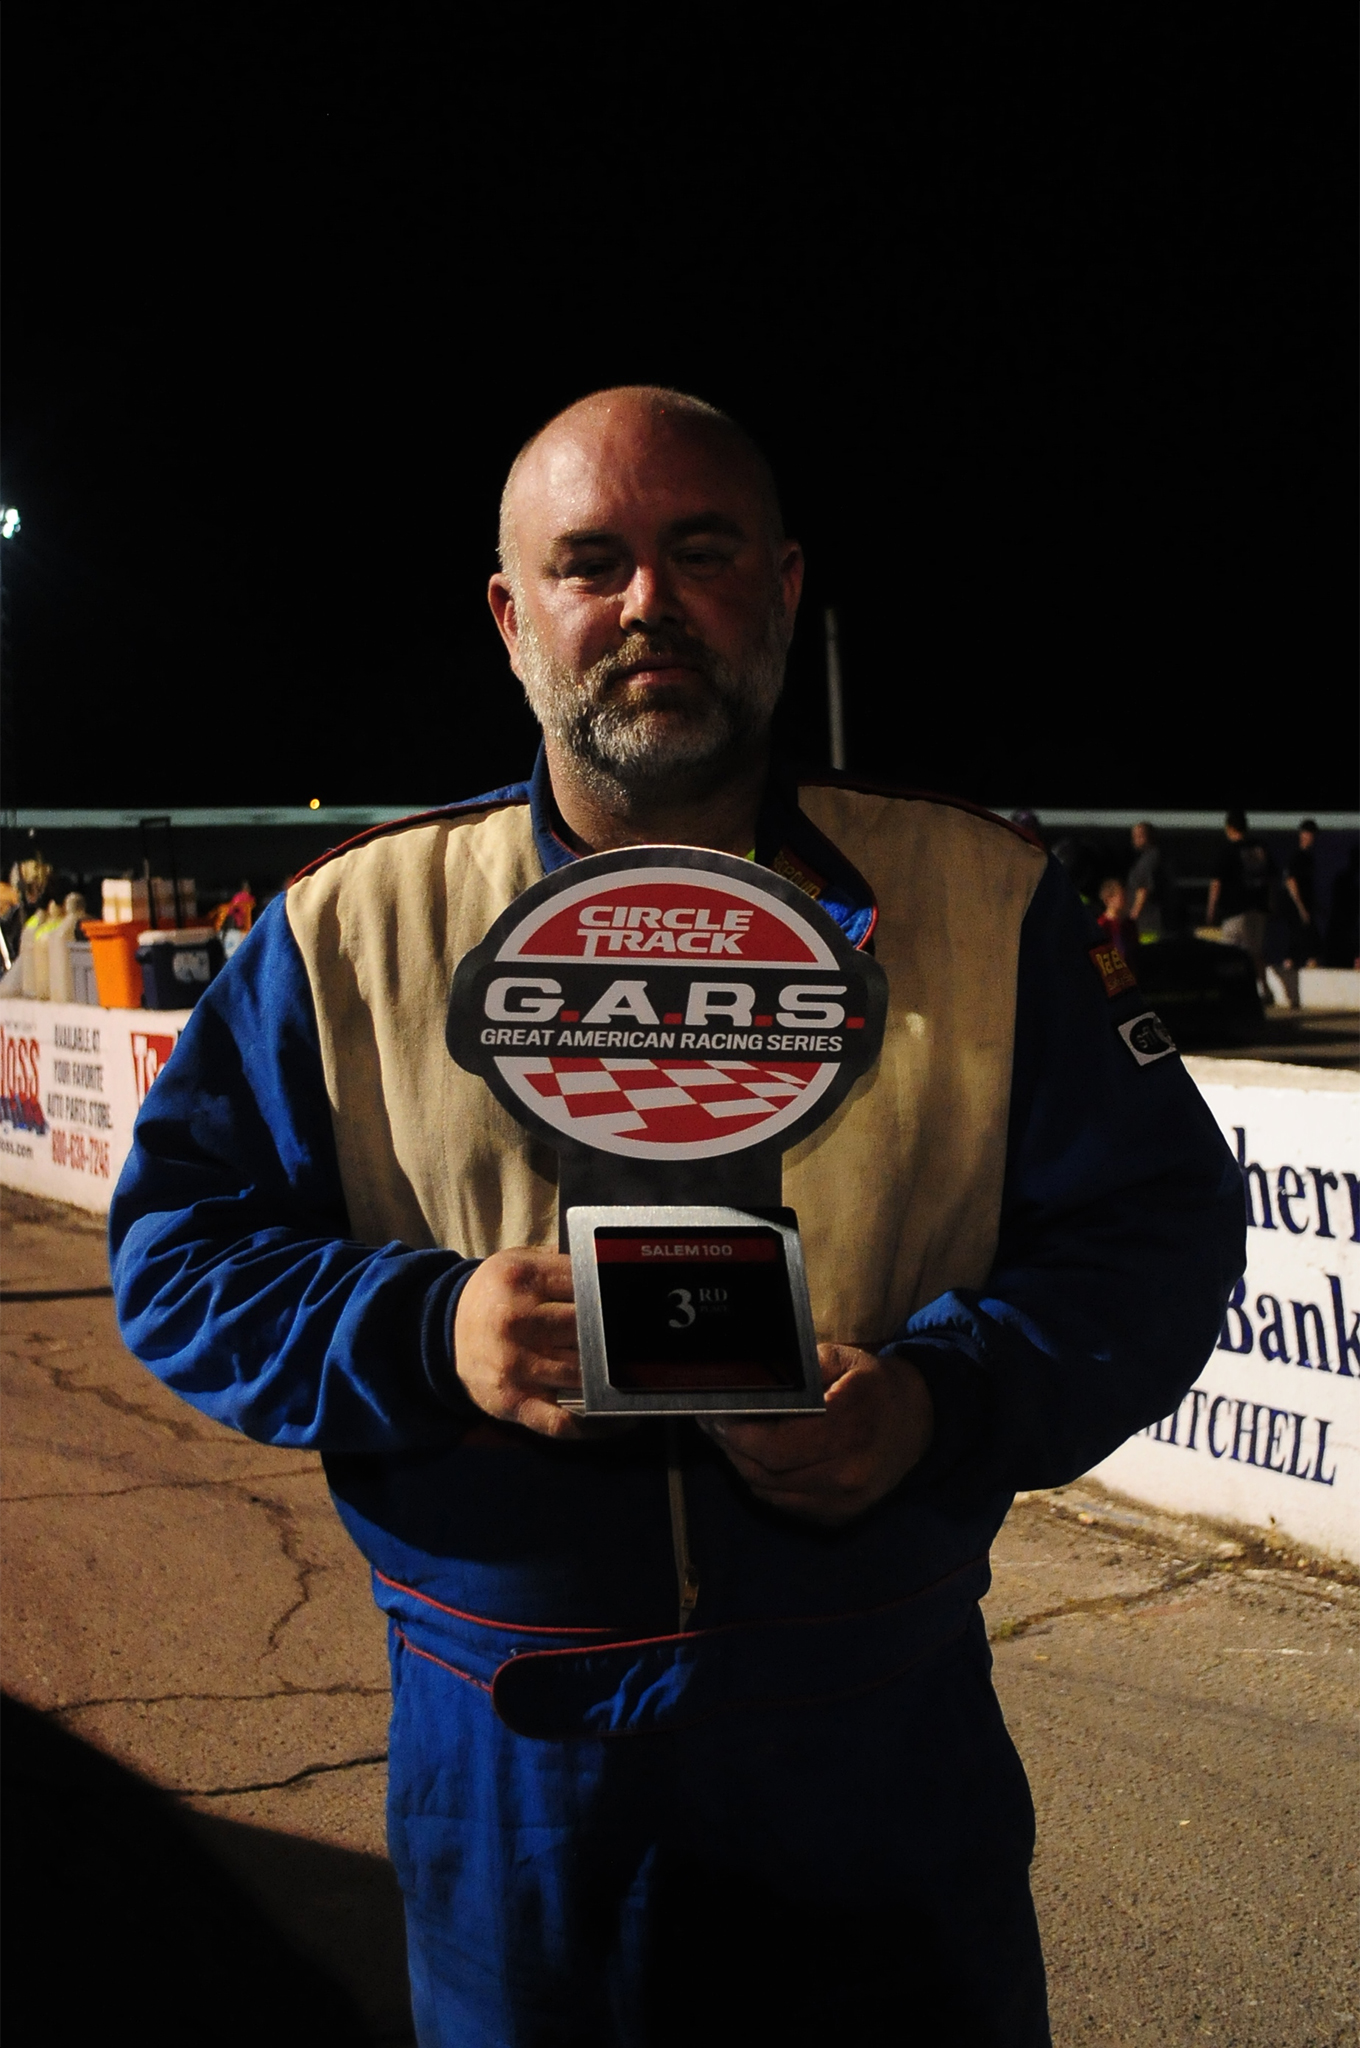 Shawn Smith from Louisville, Kentucky, finished Third and took home a nice $2,000 check for his efforts.